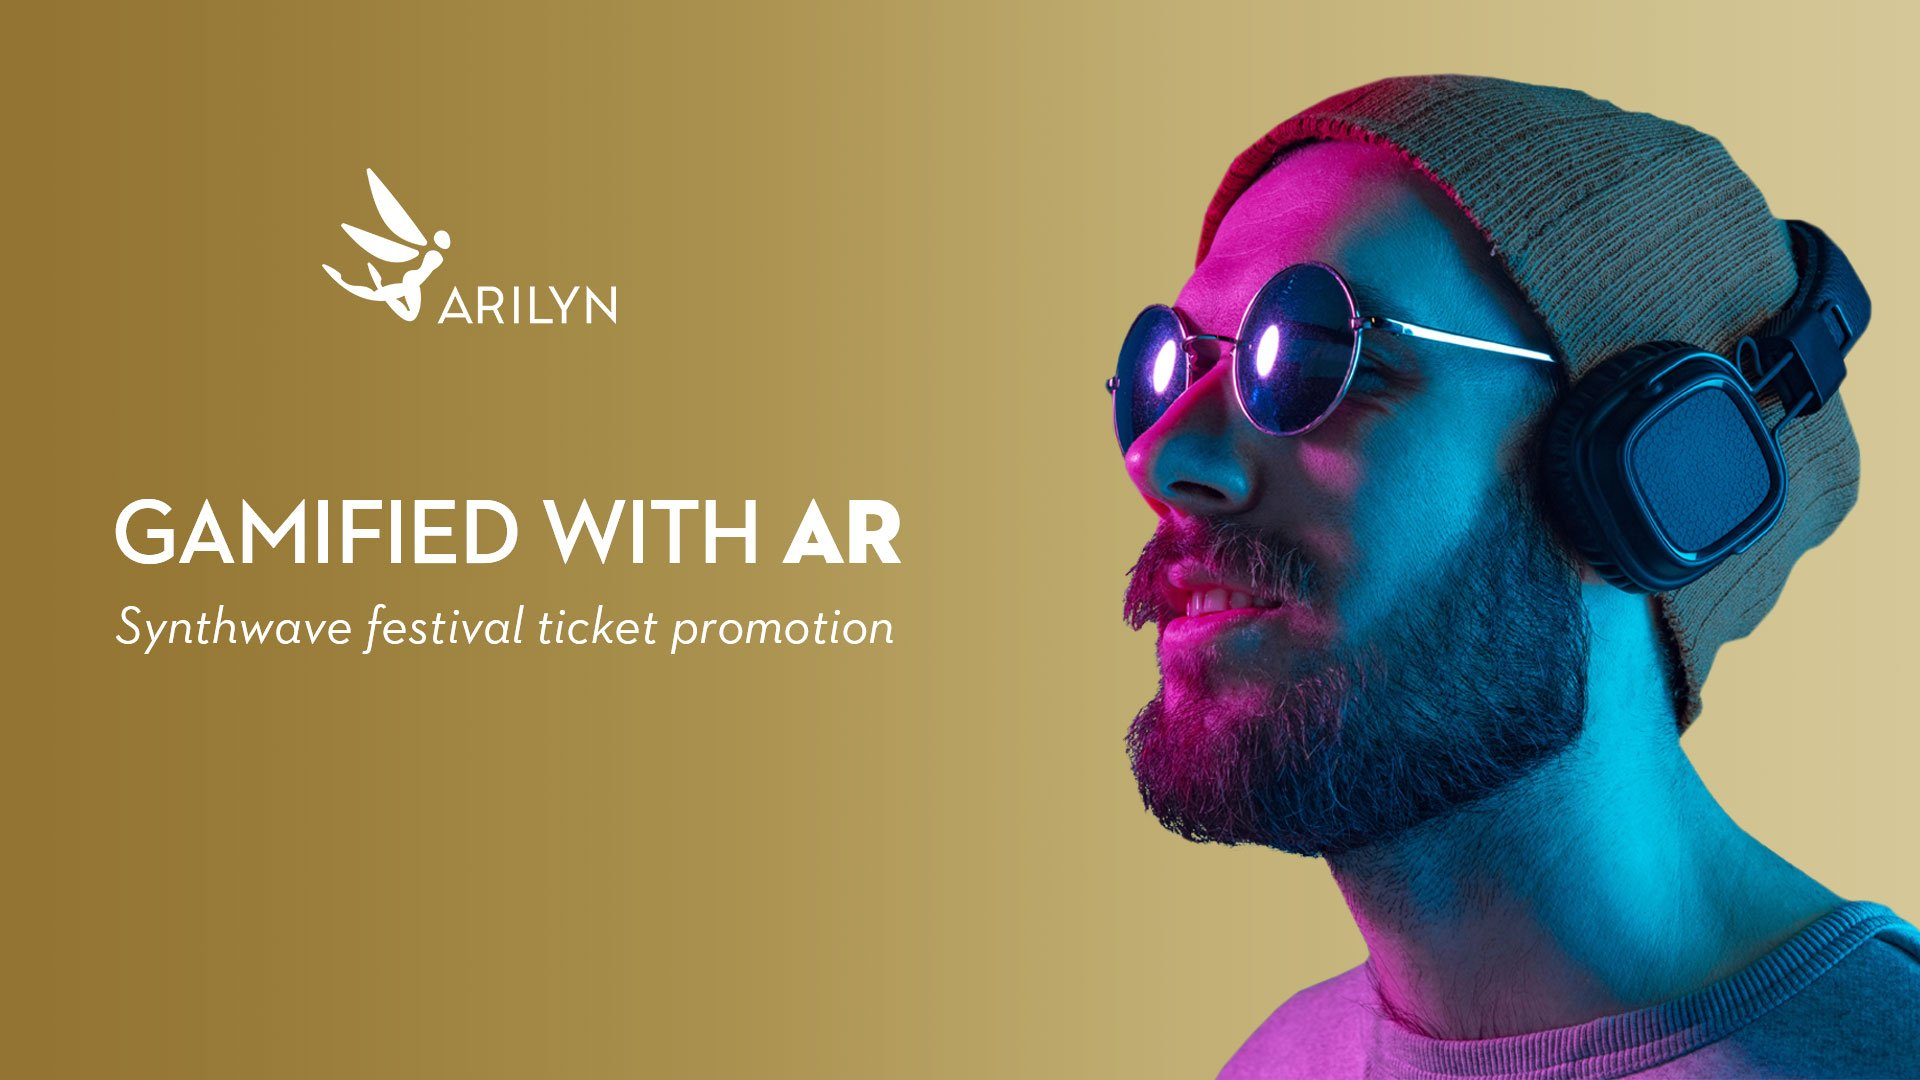 Helsinki Synth City Festival's ticket promotion gamified with AR